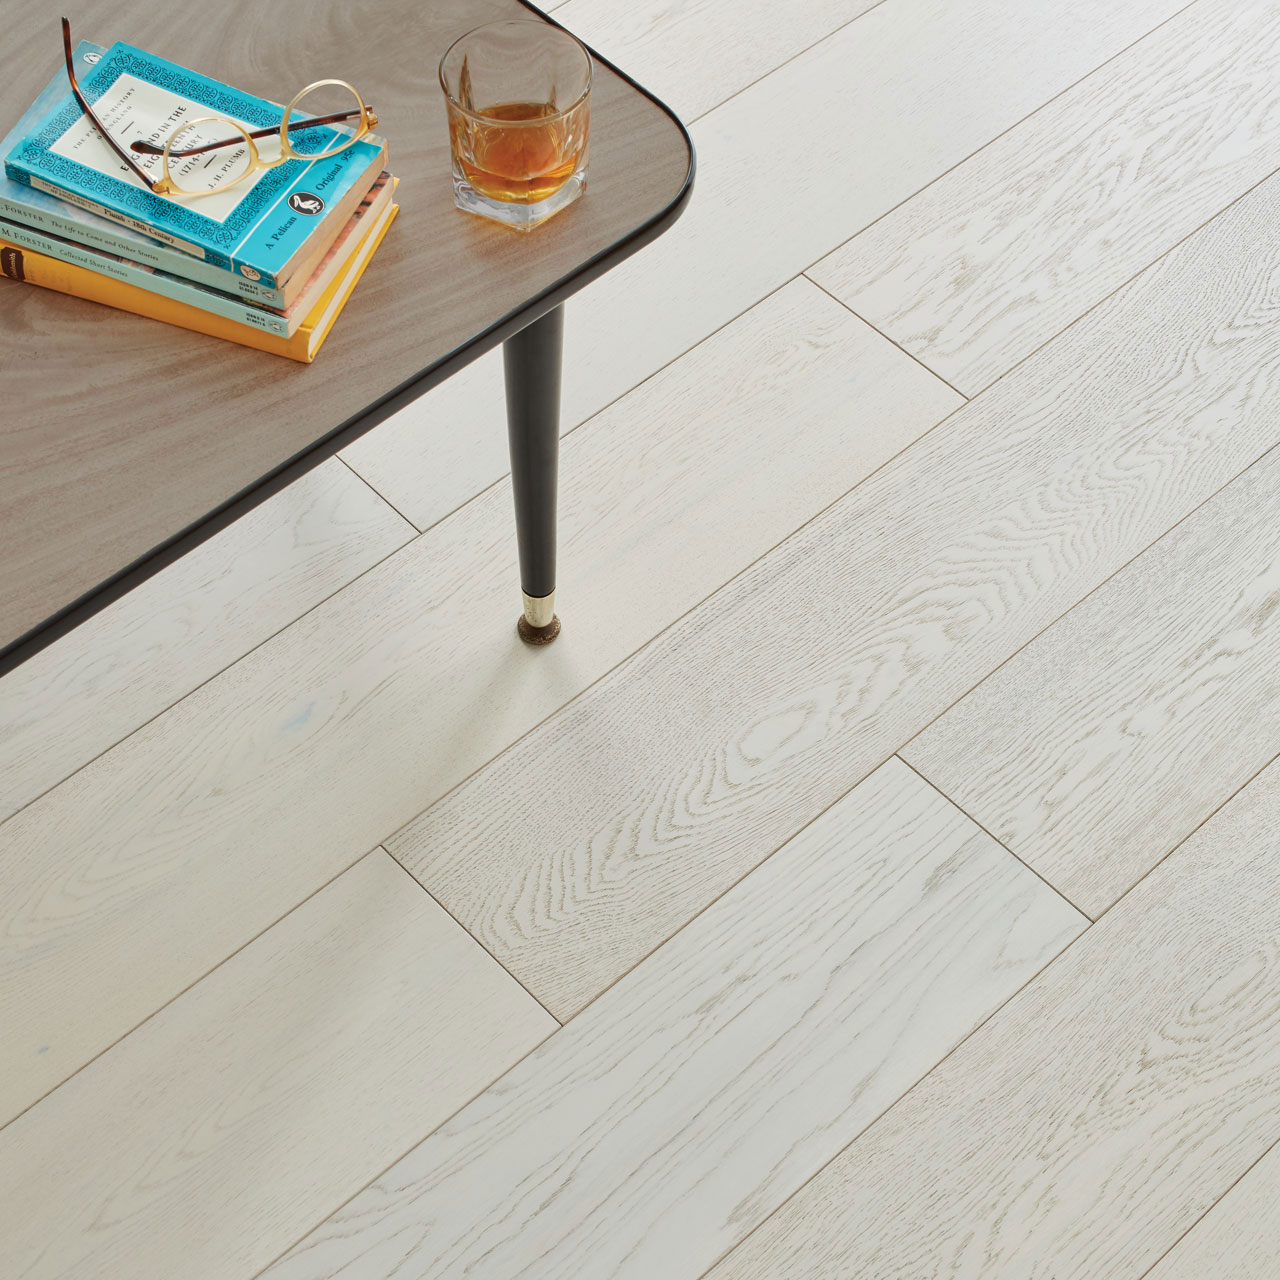 product-engineered-wood-salcombe-chalked-detail